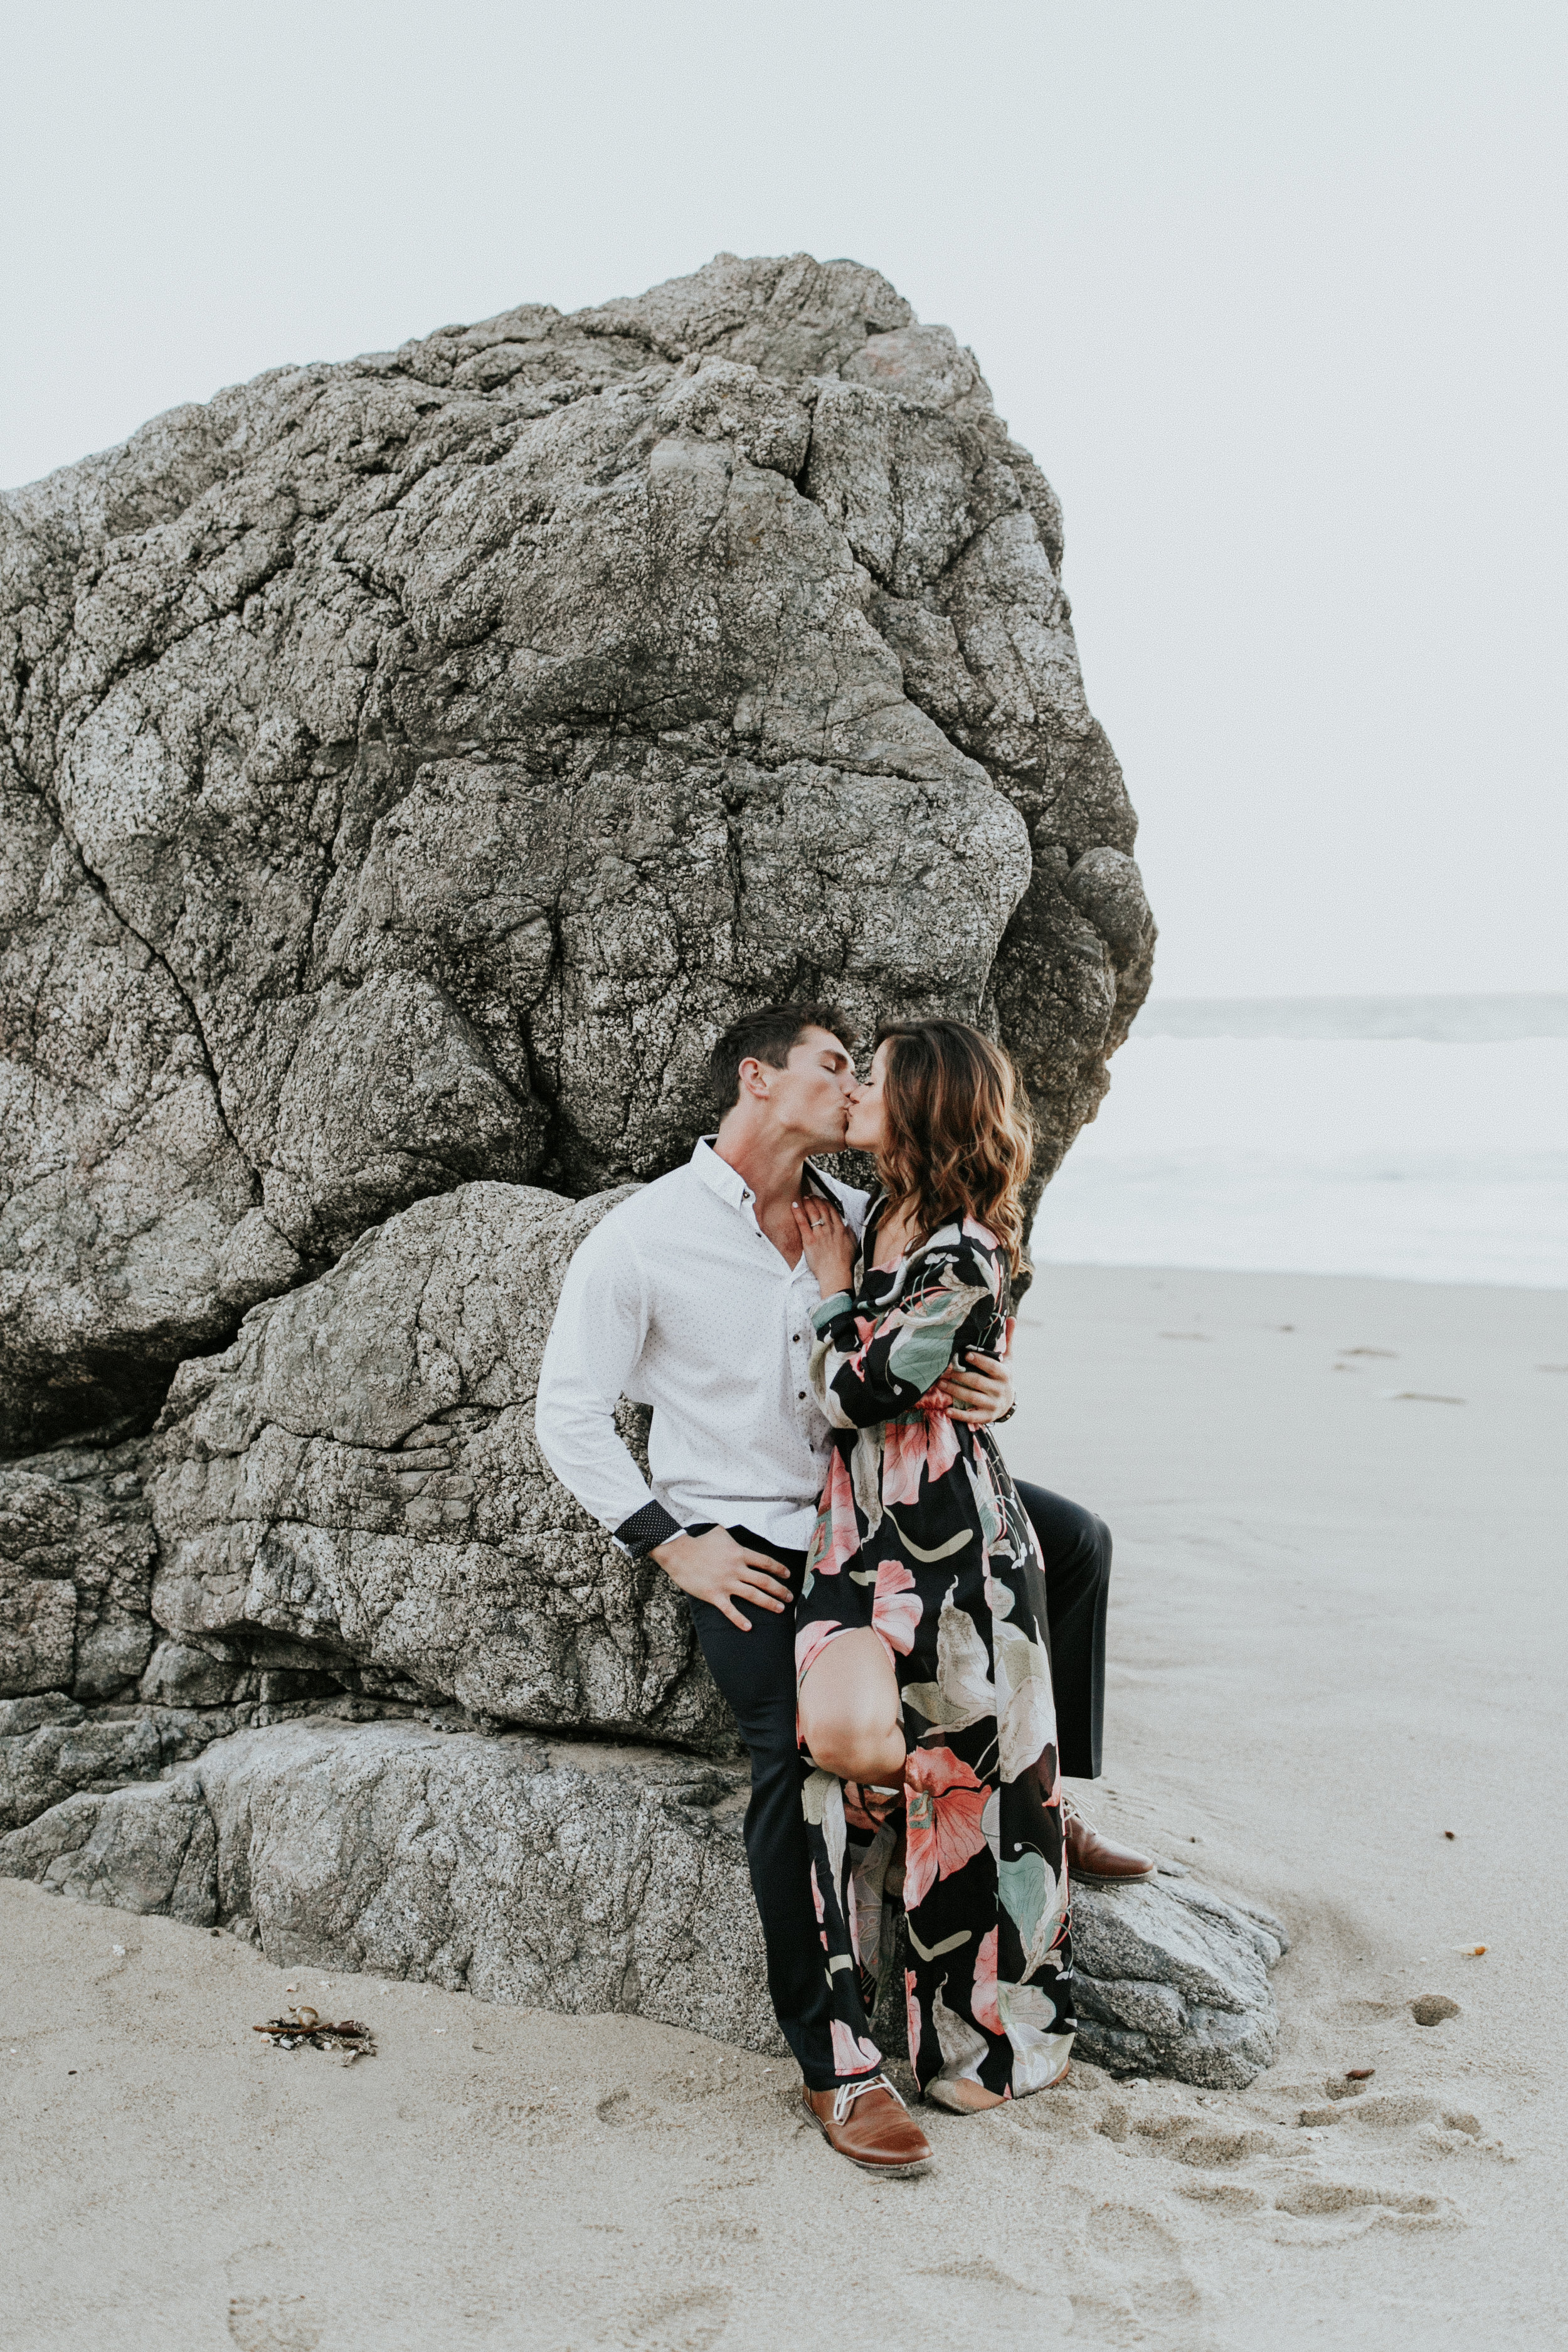 gracetphotography-destination-wedding-photographer-bigsur-adventure-elopement-17.jpg